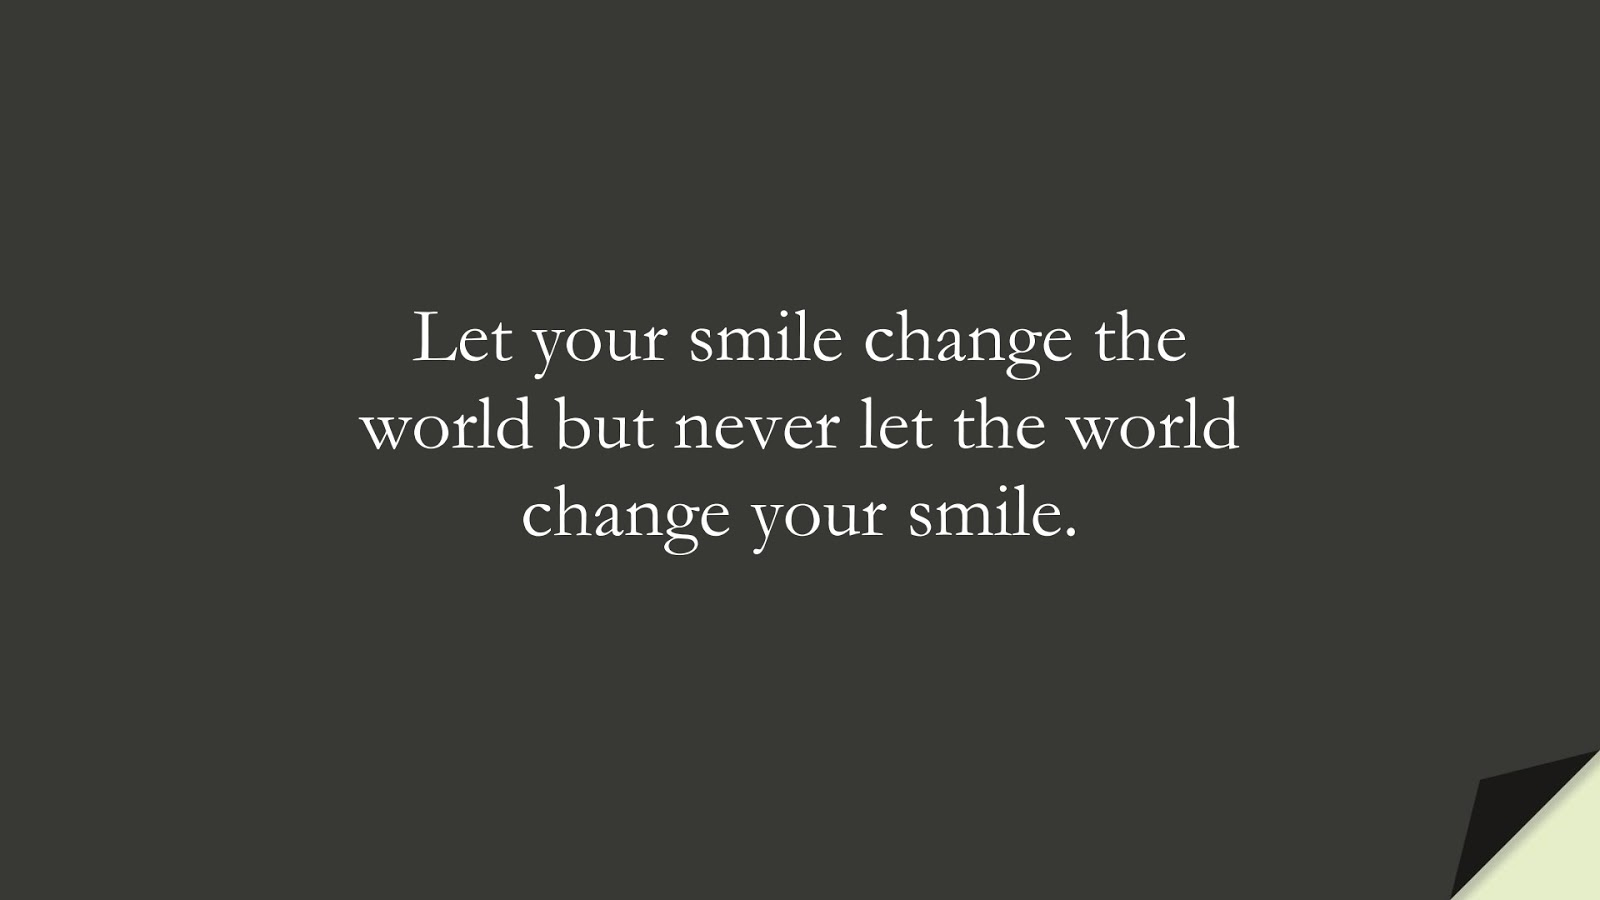 Let your smile change the world but never let the world change your smile.FALSE